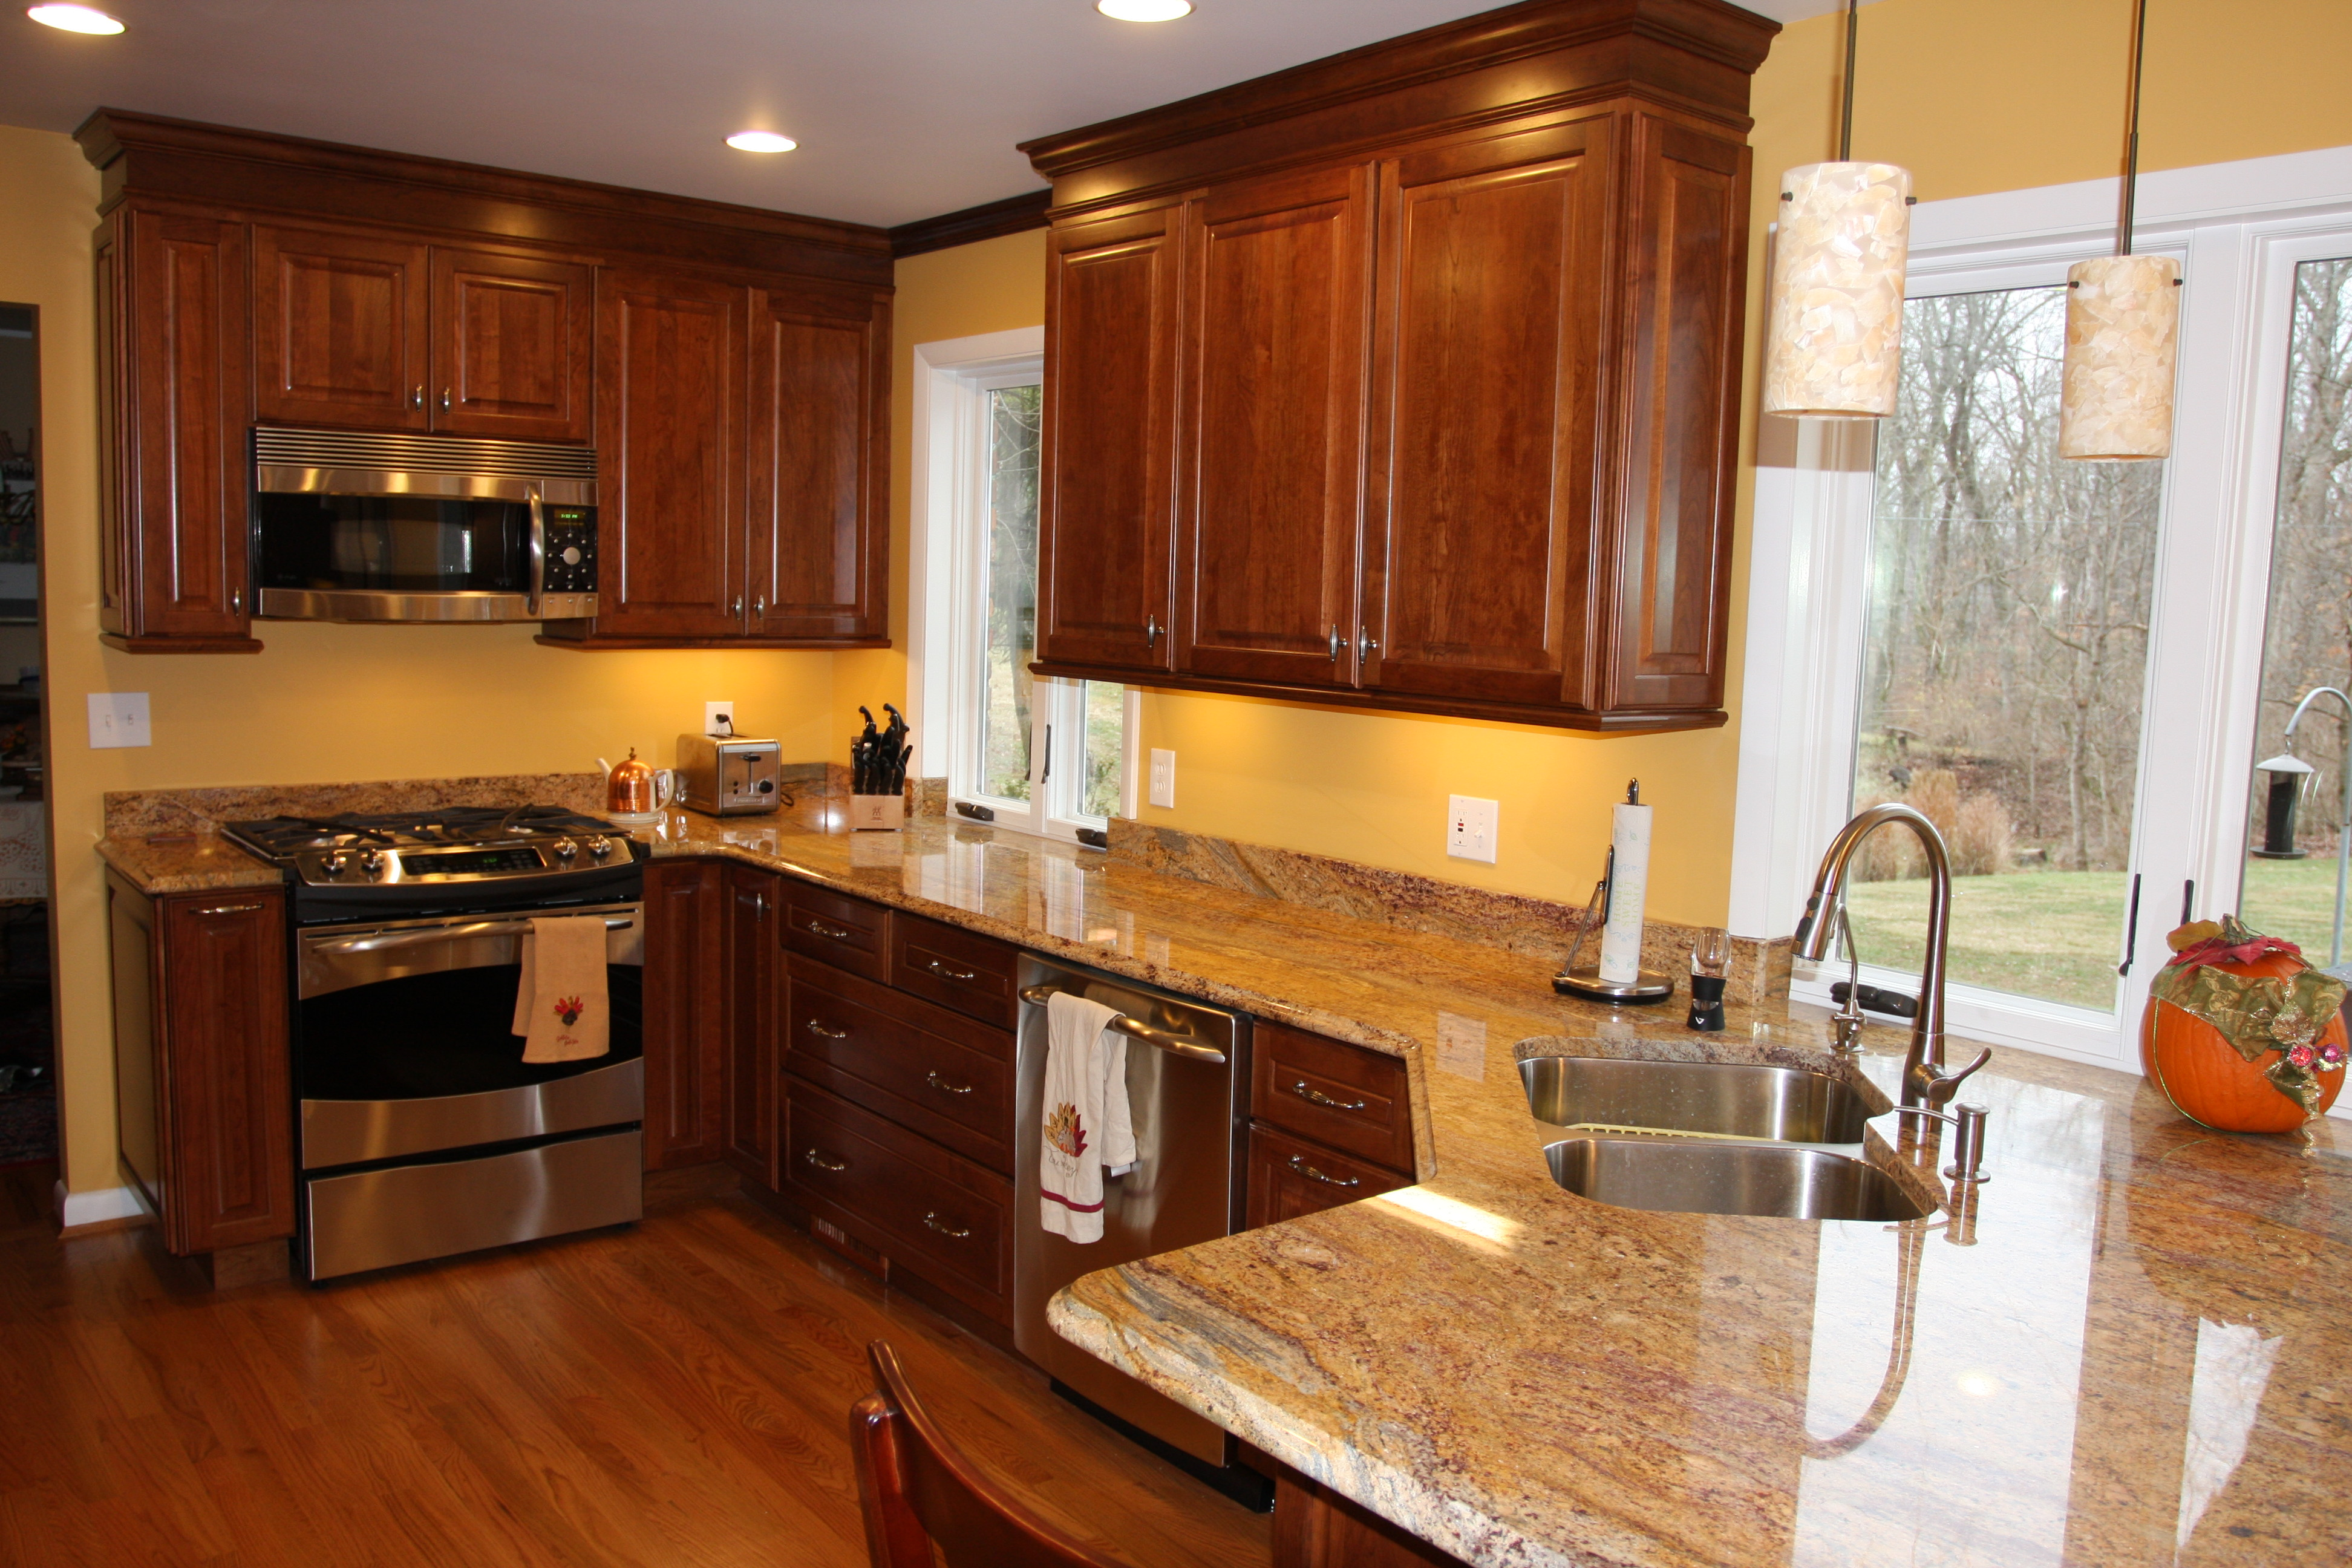 The Best Color Granite for Cherry Cabinets and Hardwood ... on What Color Granite Goes With Maple Cabinets  id=68795